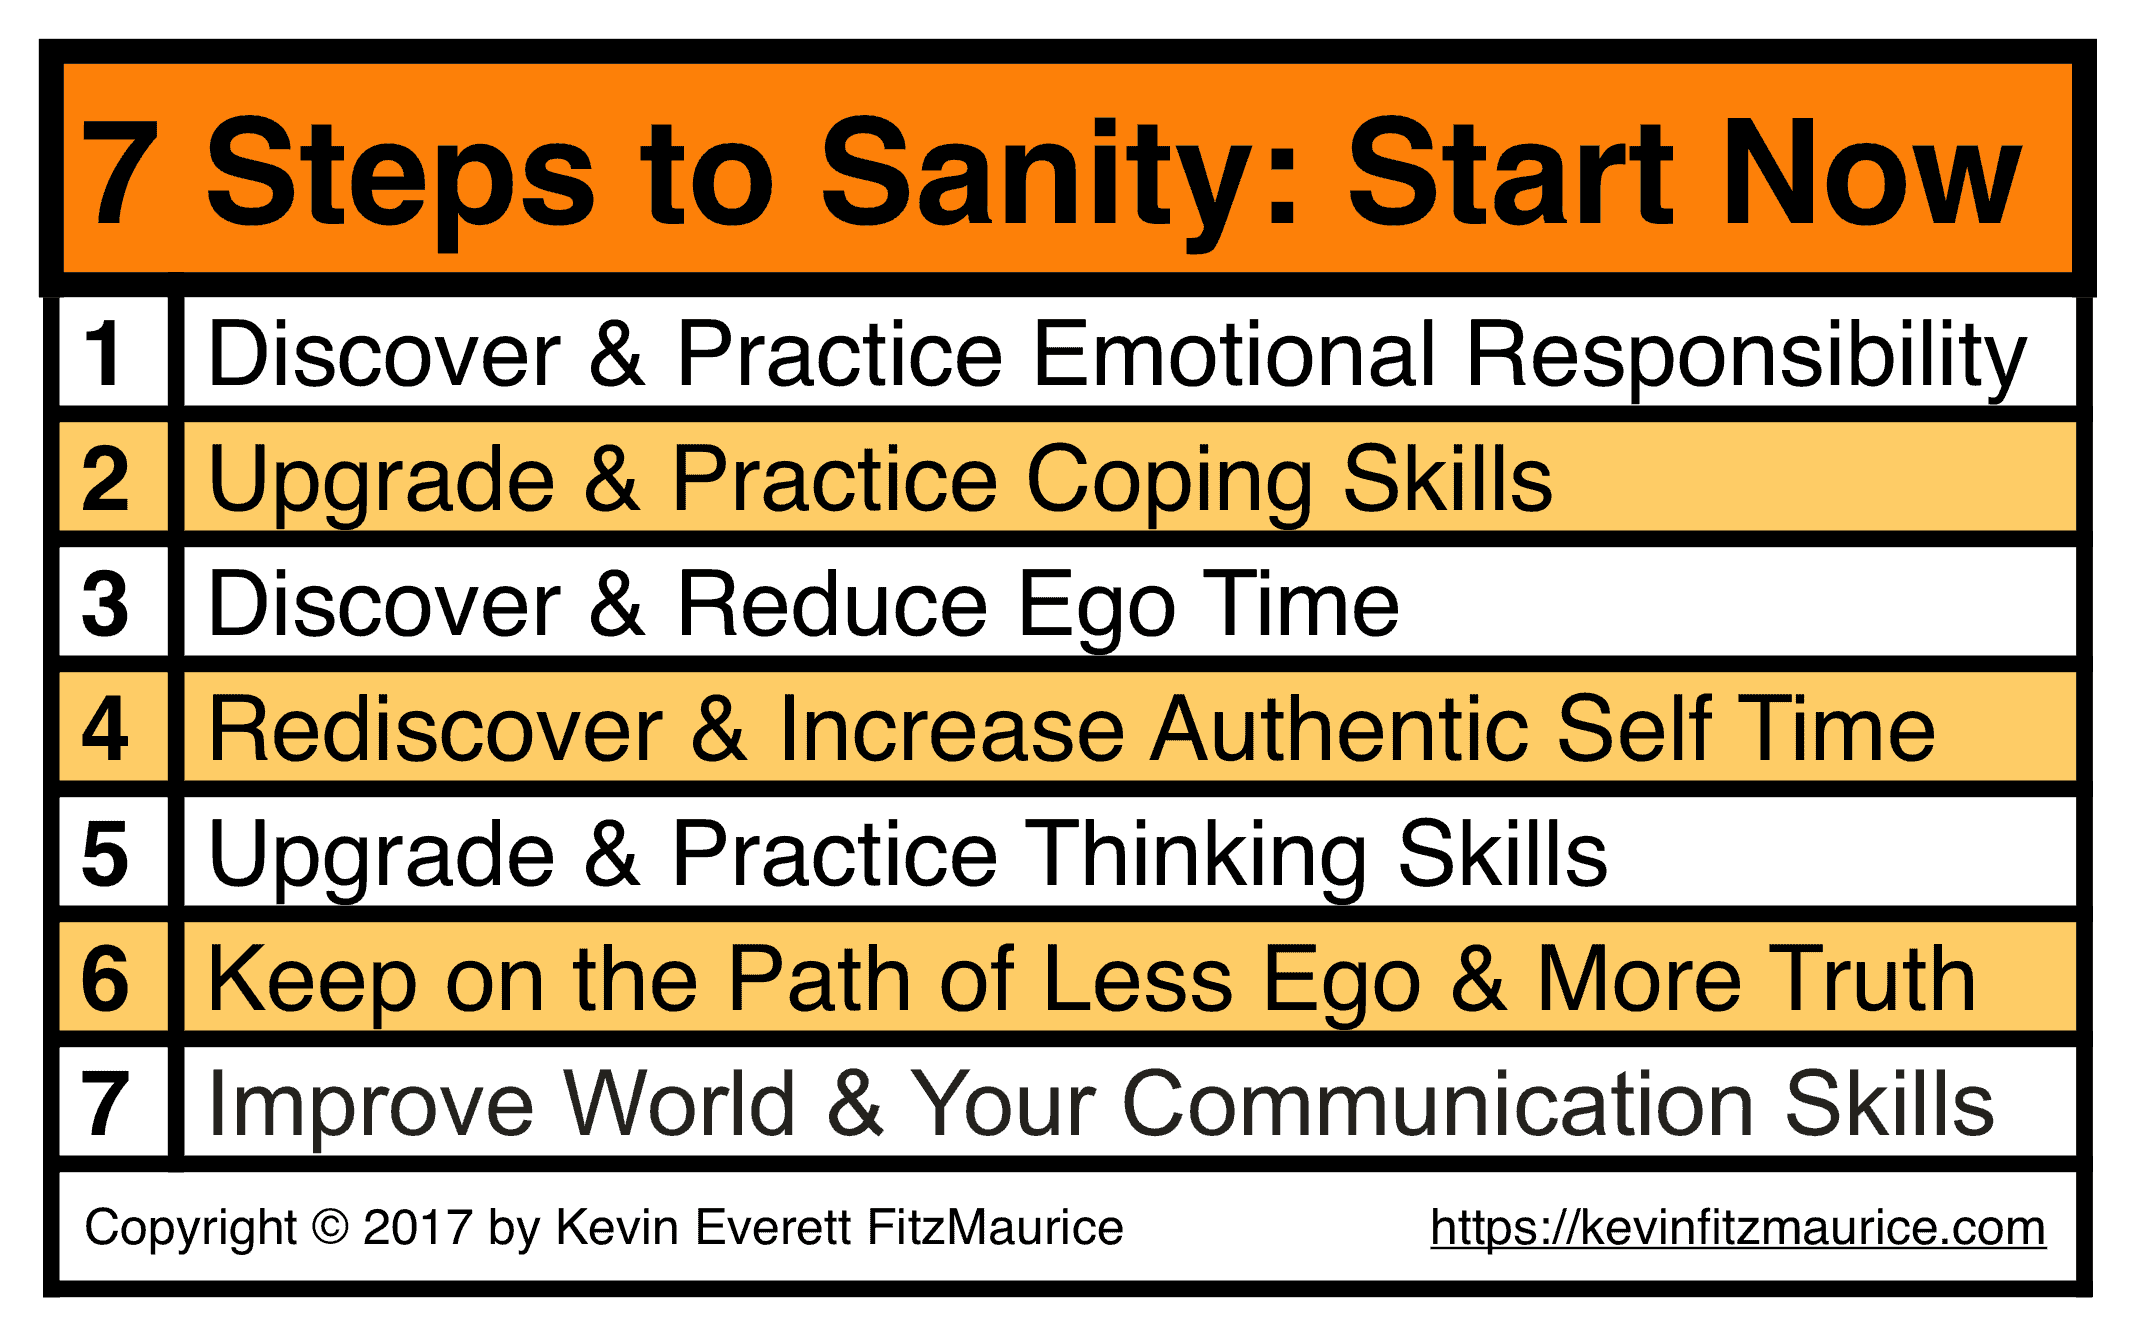 7 Steps to Sanity Quotations